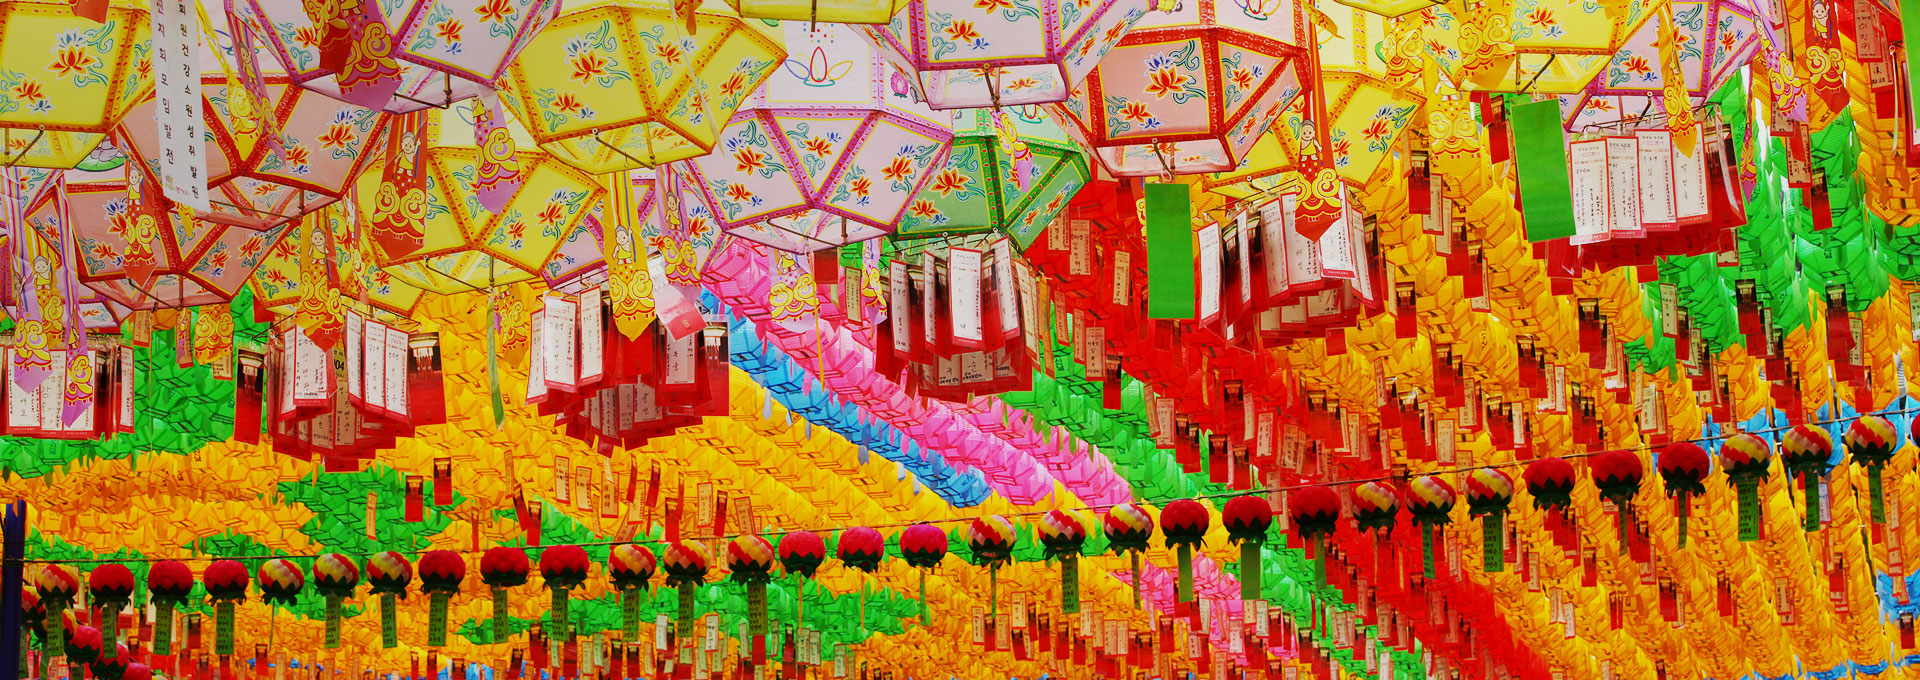 Lotus Lantern Festival, Celebrating Traditional Buddhist Culture